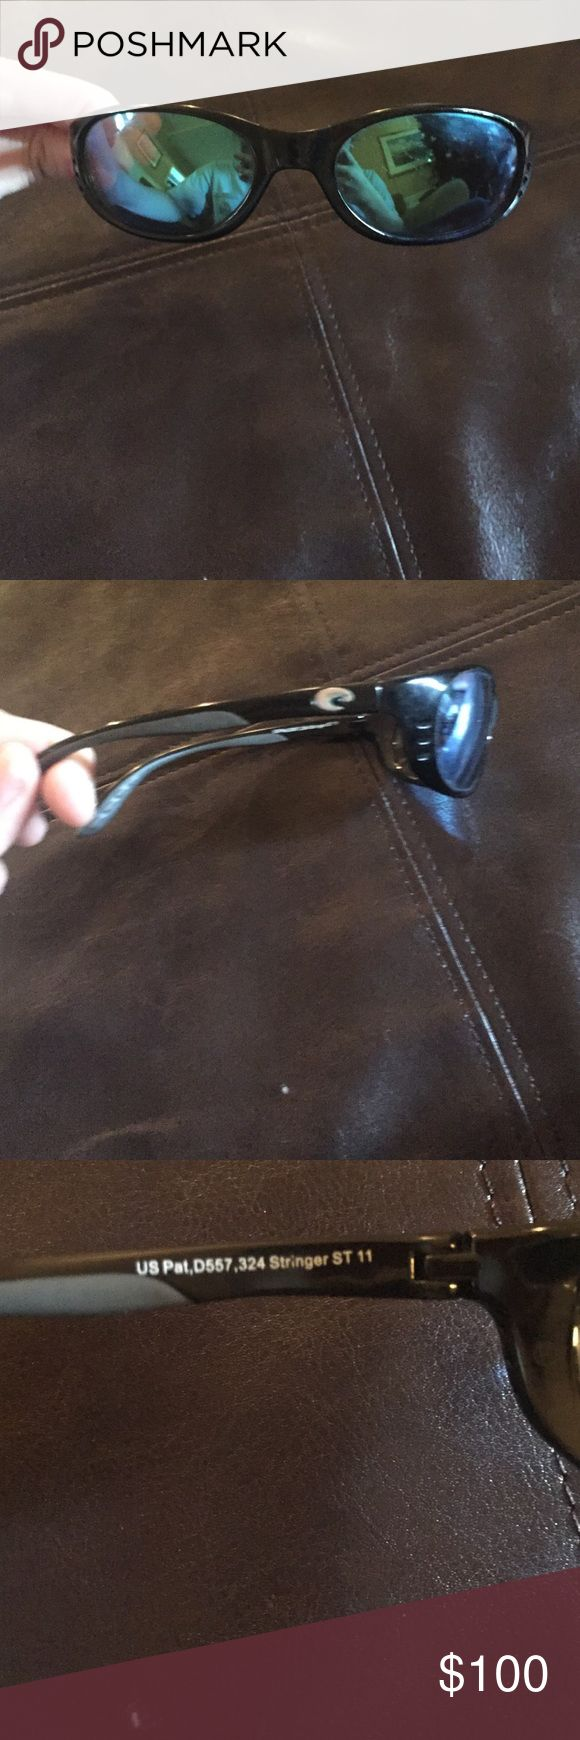 Costa Del Mar sunglasses Great condition! Got new ones for Christmas so I have no use for them anymore! Costa Del Mar Accessories Sunglasses